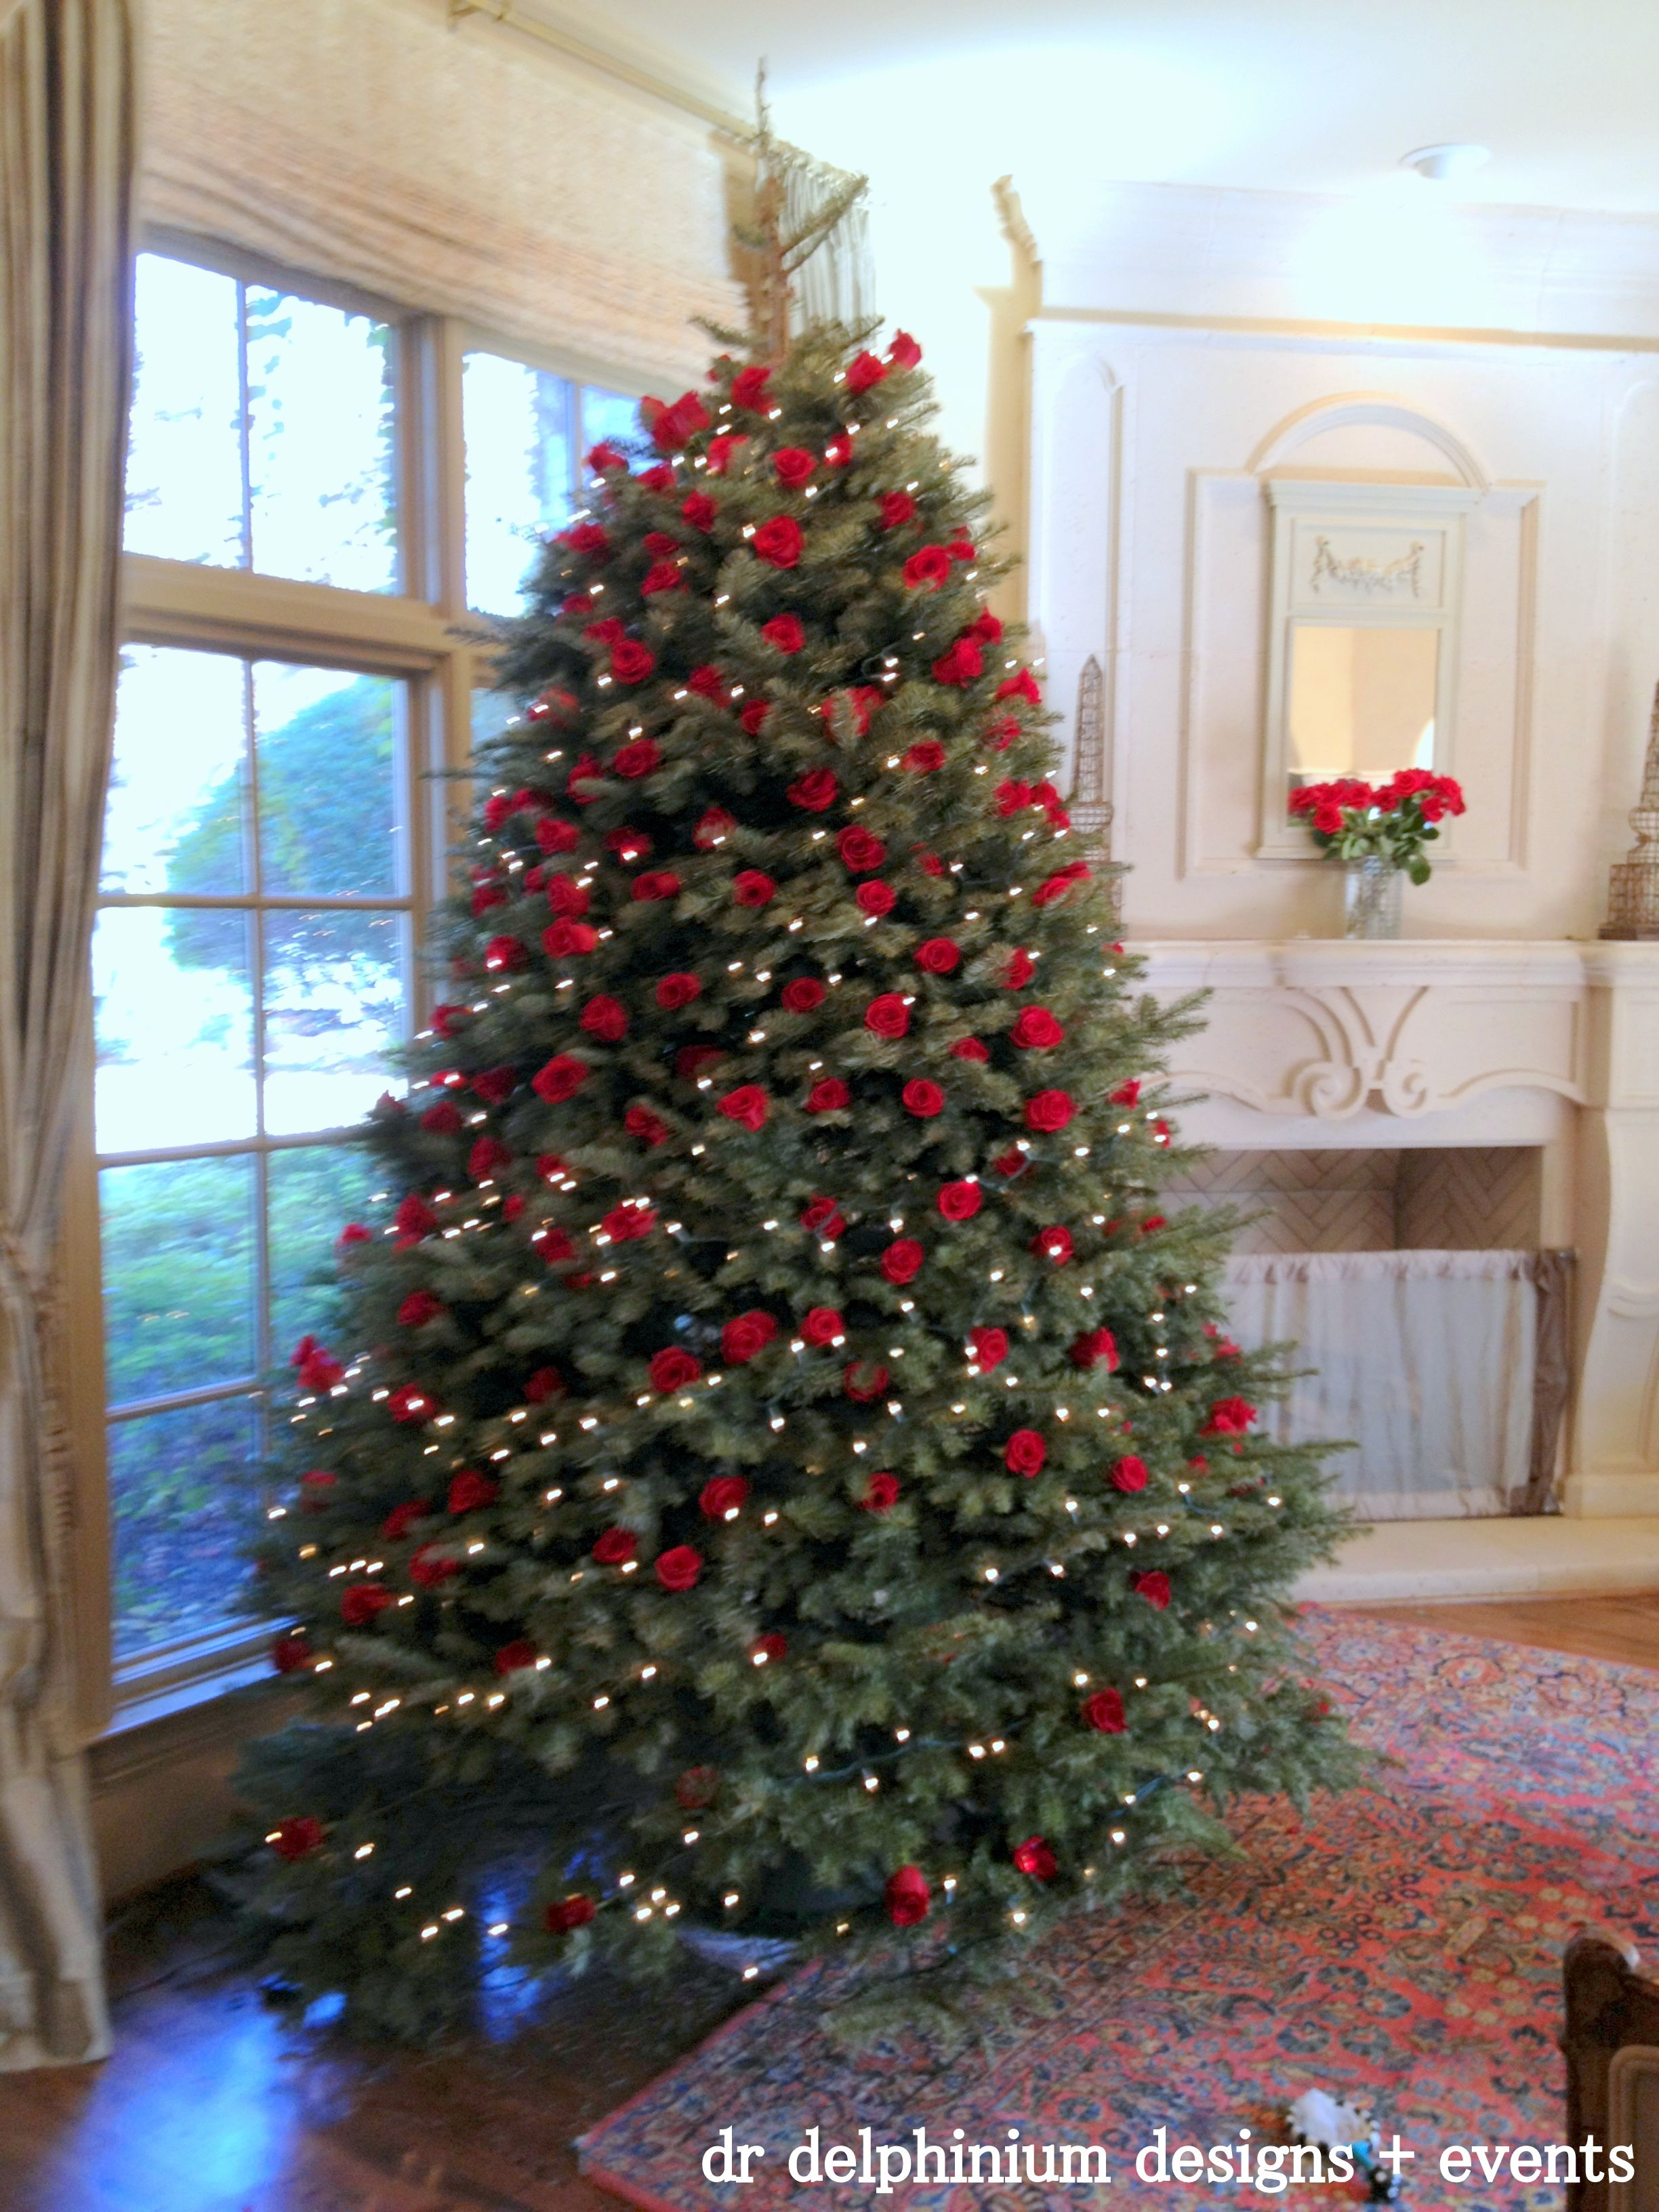 Christmas Tree Decorated With Real Red Roses Gorgeous Christmas Tree Roses Christmas Tree Pictures Christmas Tree Decorations